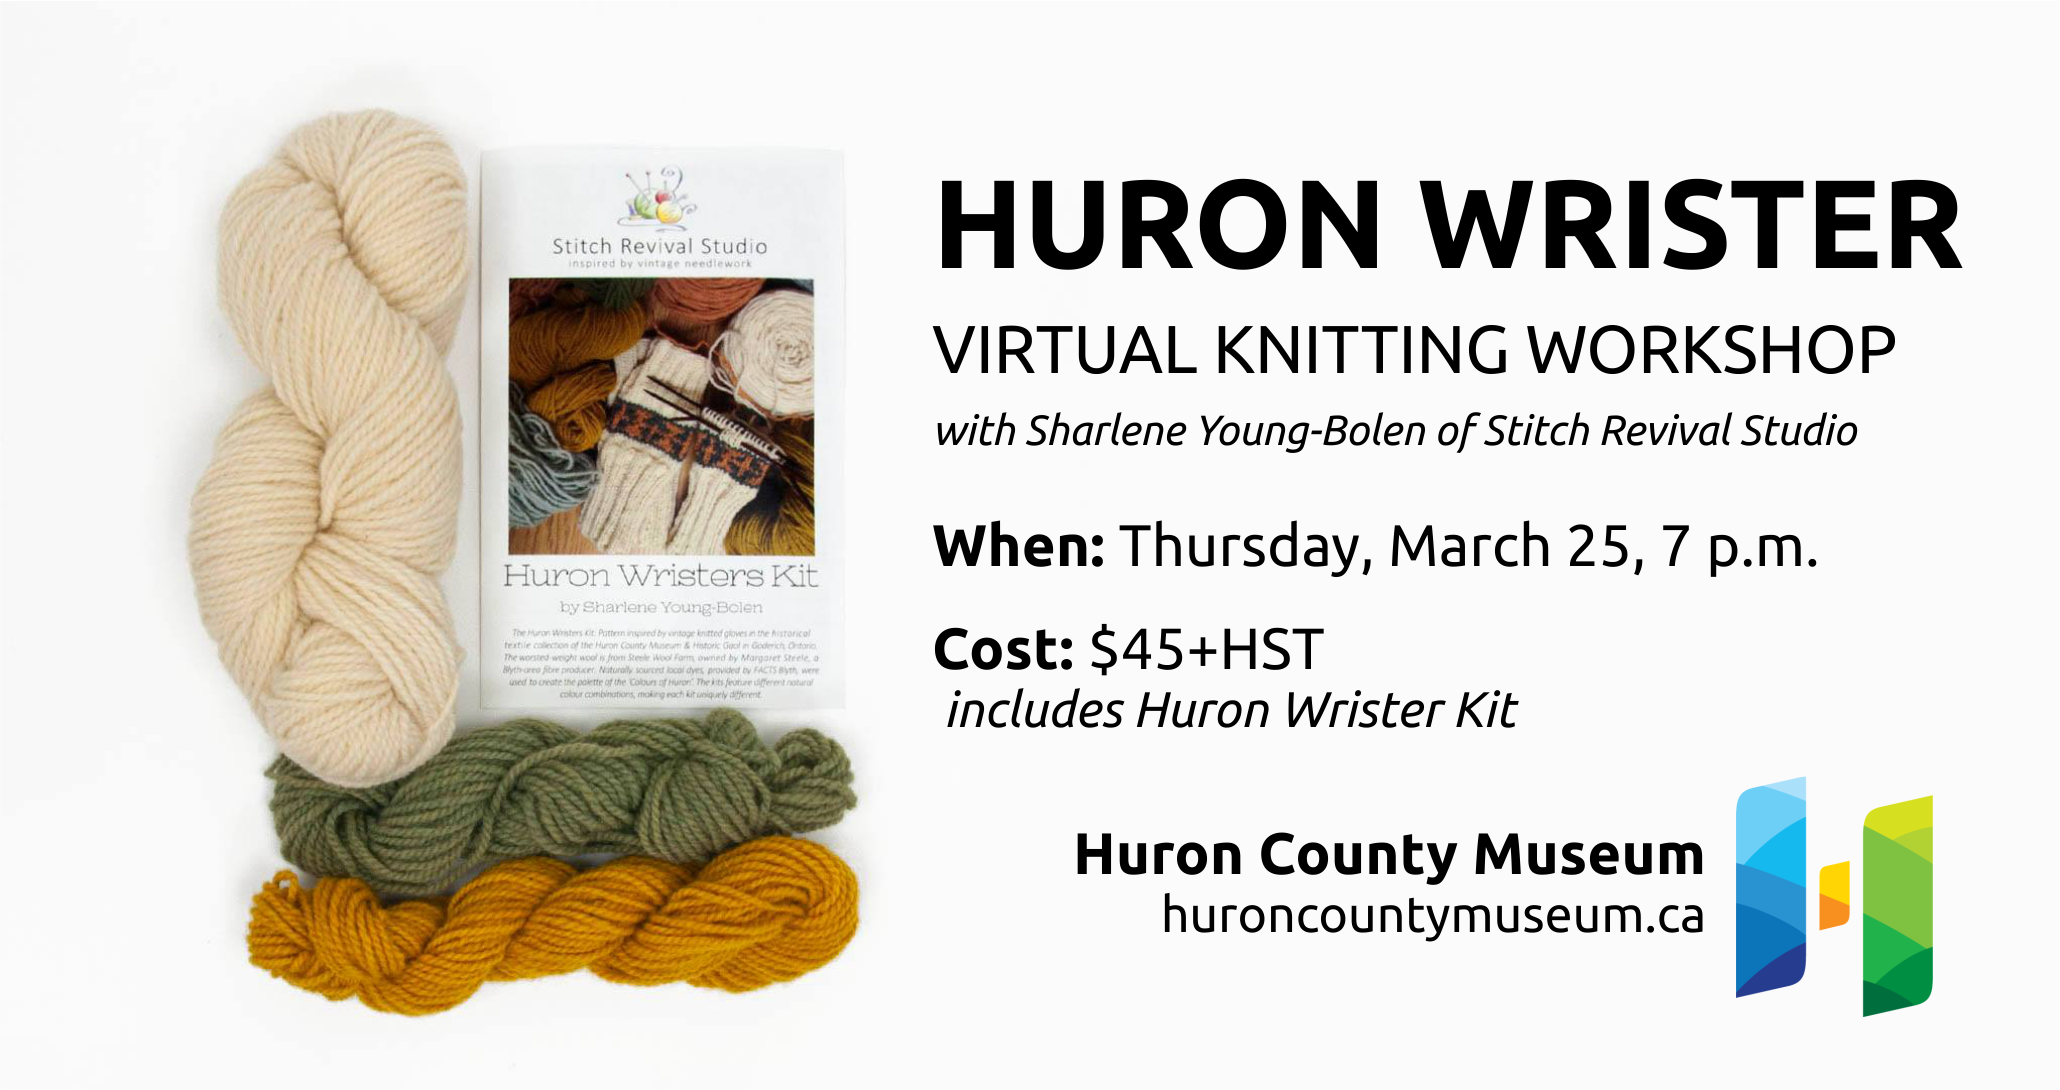 Huron Wrister knitting Worksop